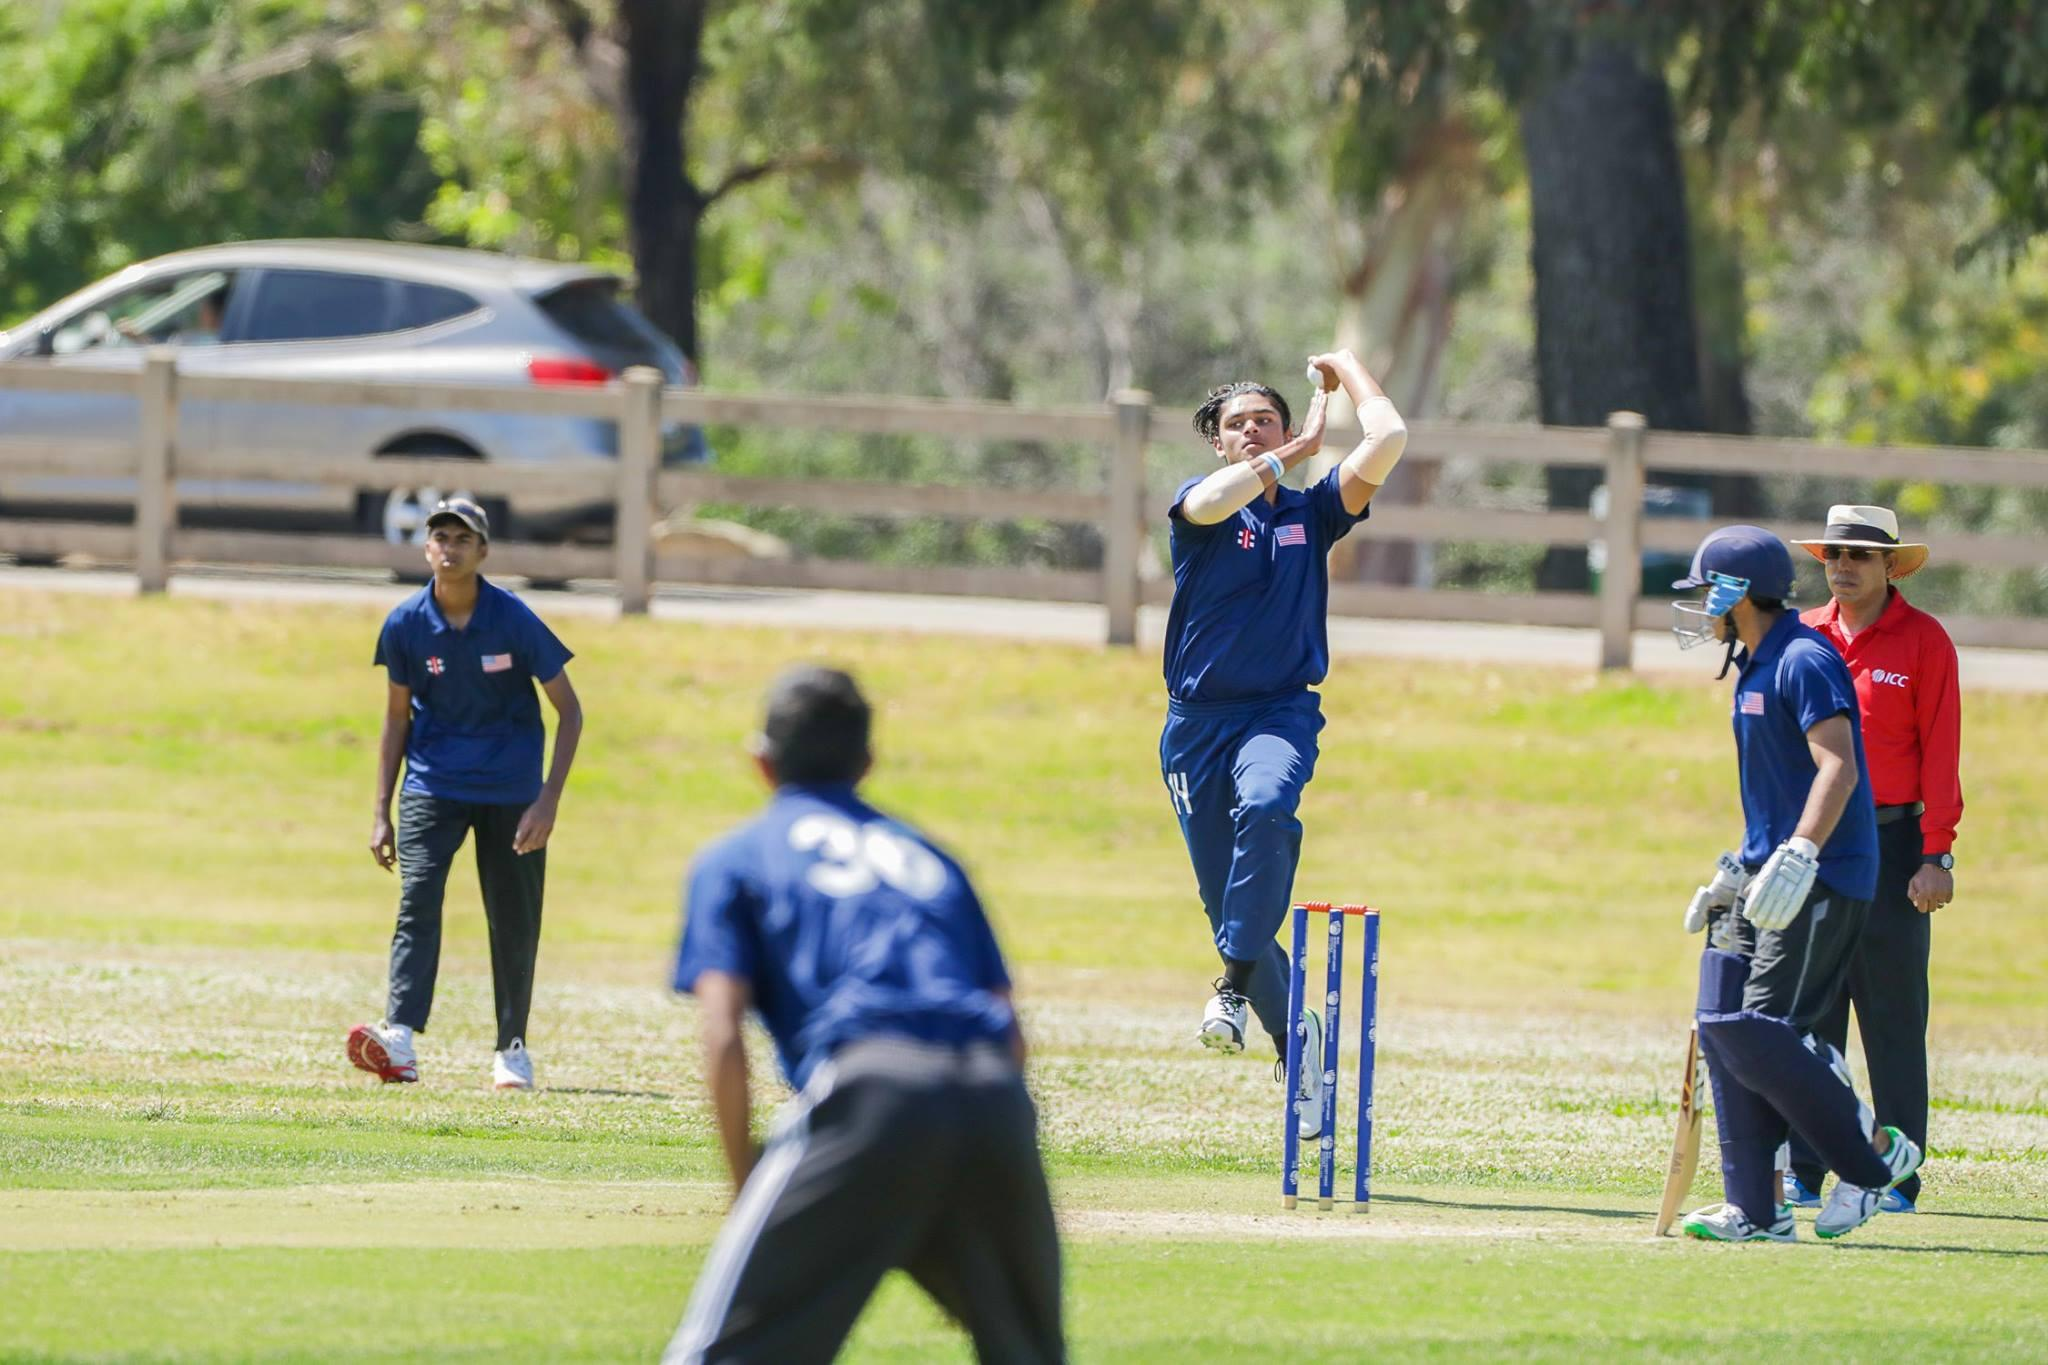 Squads Announced For The Icc U19 Cricket World Cup